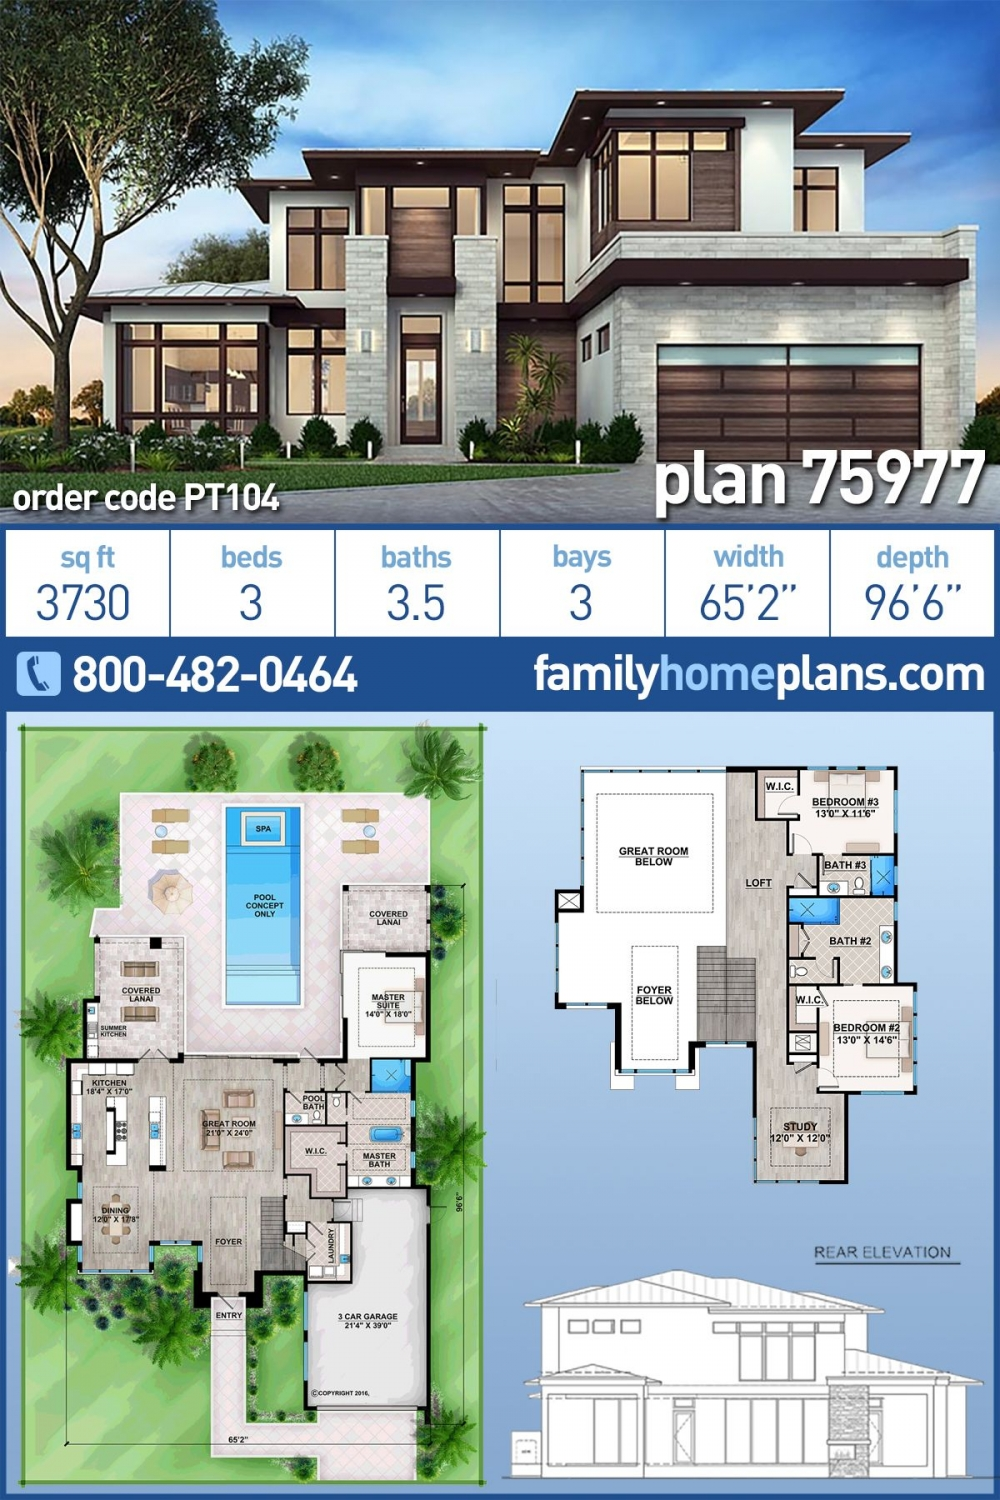 of modern houses pictures on modern houses pictures post on 2020-12-20 14:00:00